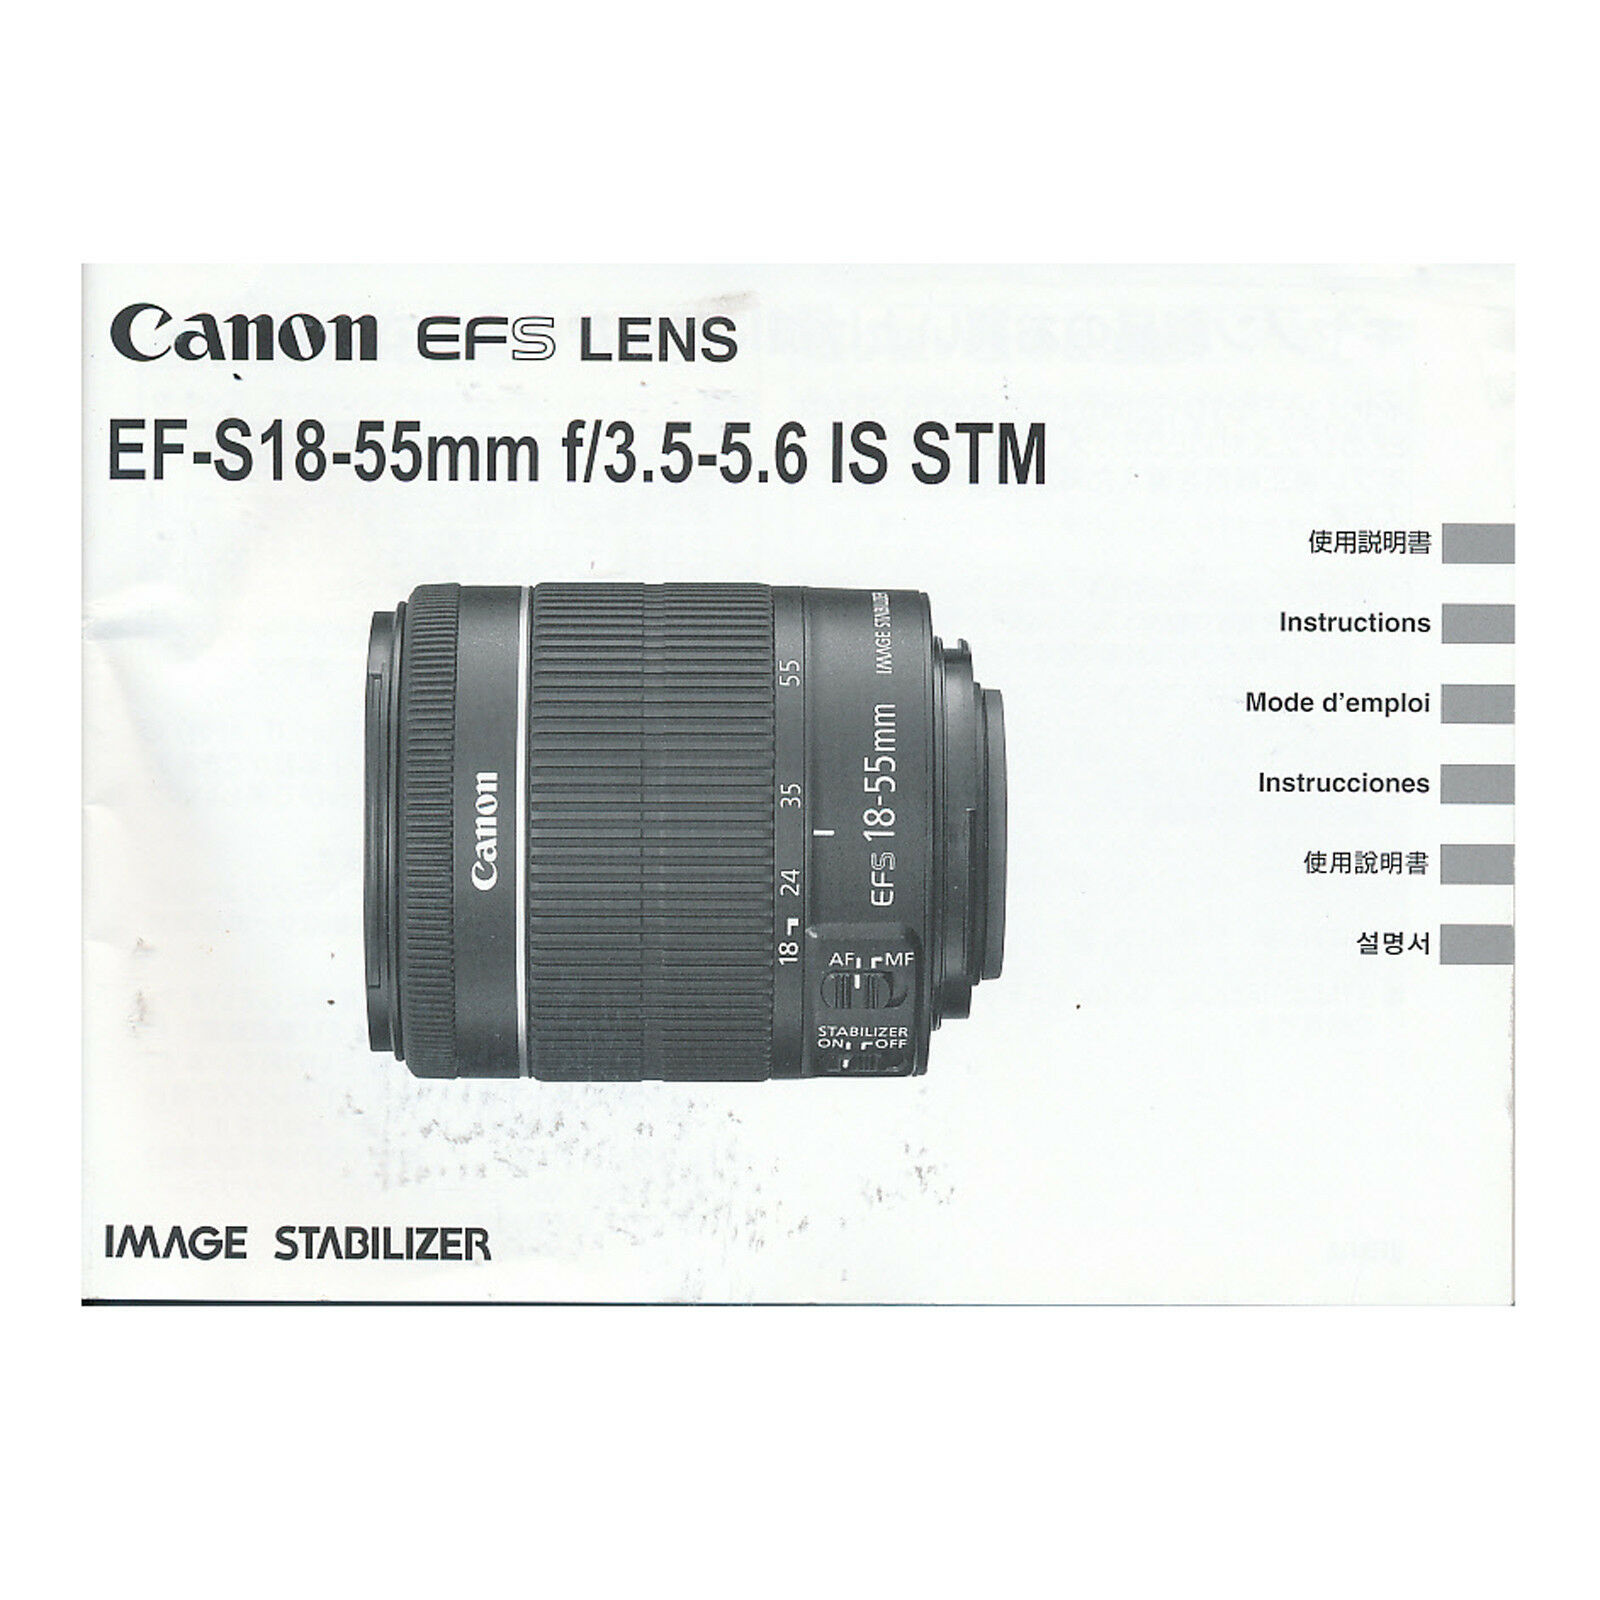 Canon Ef S 18 55mm F 35 56 Is Stm Original Manual 500 Picclick Eos 700d Kit 135mm 1 Of 1only 3 Available